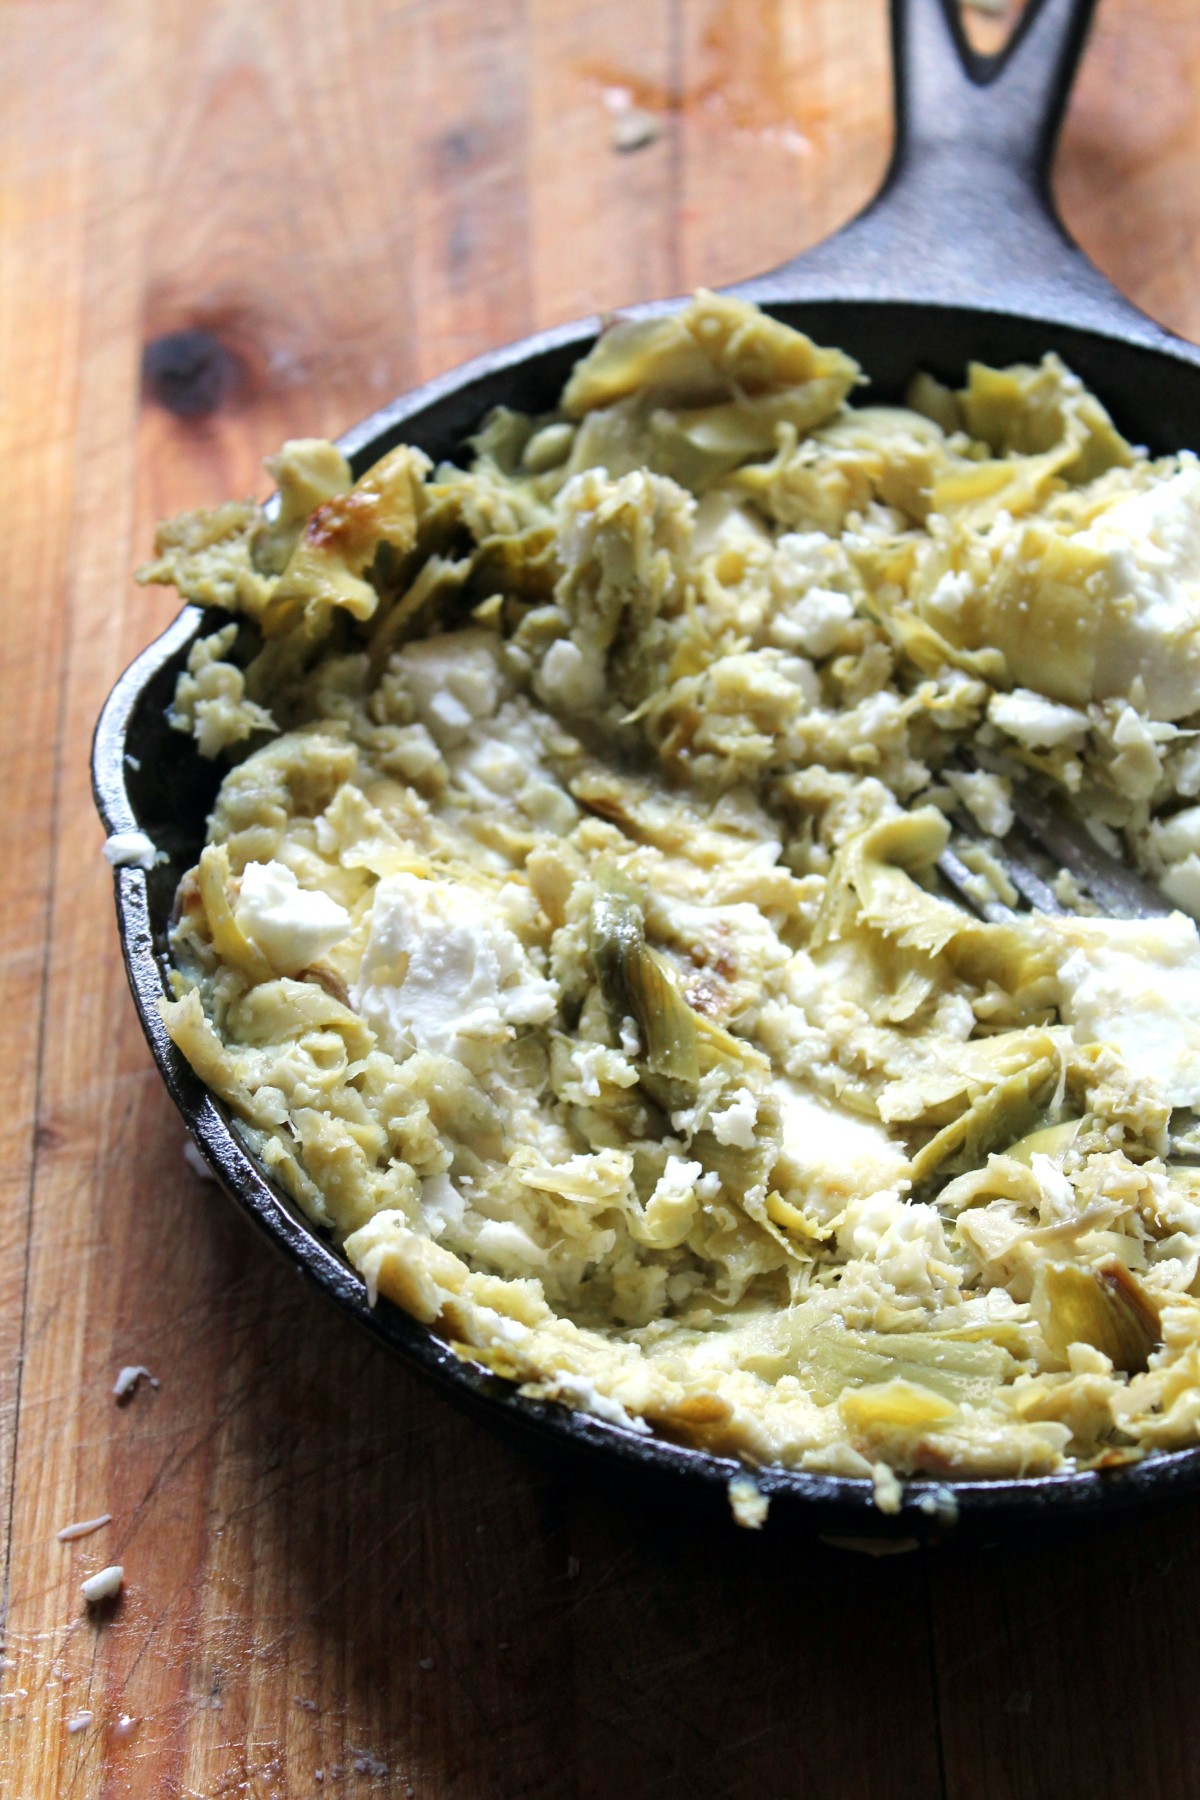 Simple feta and artichoke dip. 6 ingredients and nothing to chop! Much lighter than the usual artichoke dip, but I think it's actually tastier!